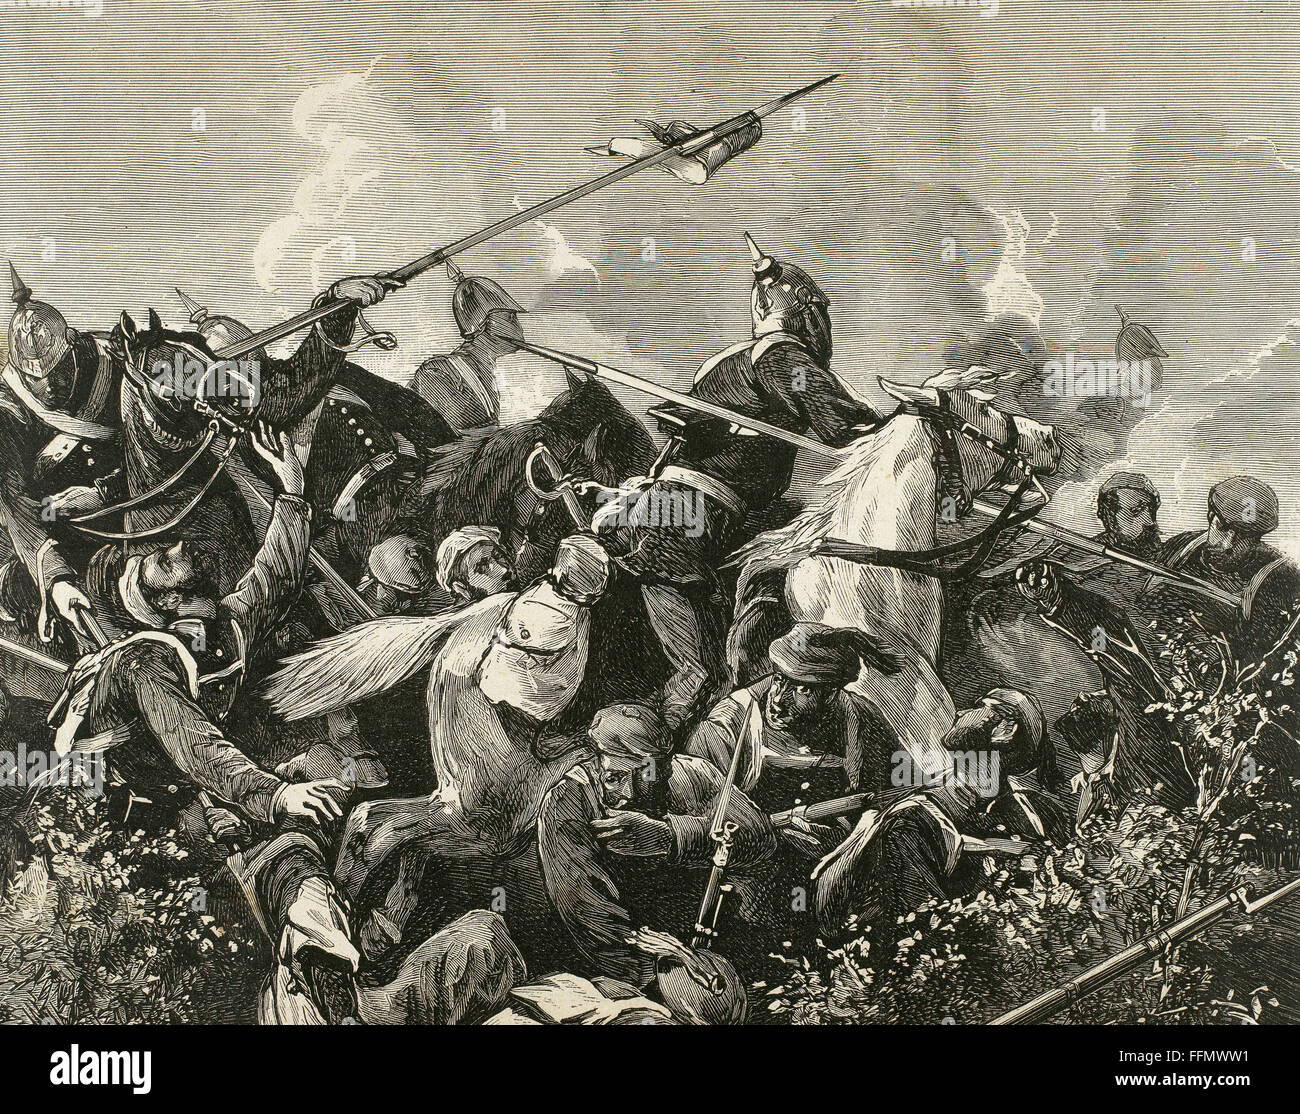 Third Carlist War (1872-1876). Fight between Carlist and liberal troops. Engraving. - Stock Image